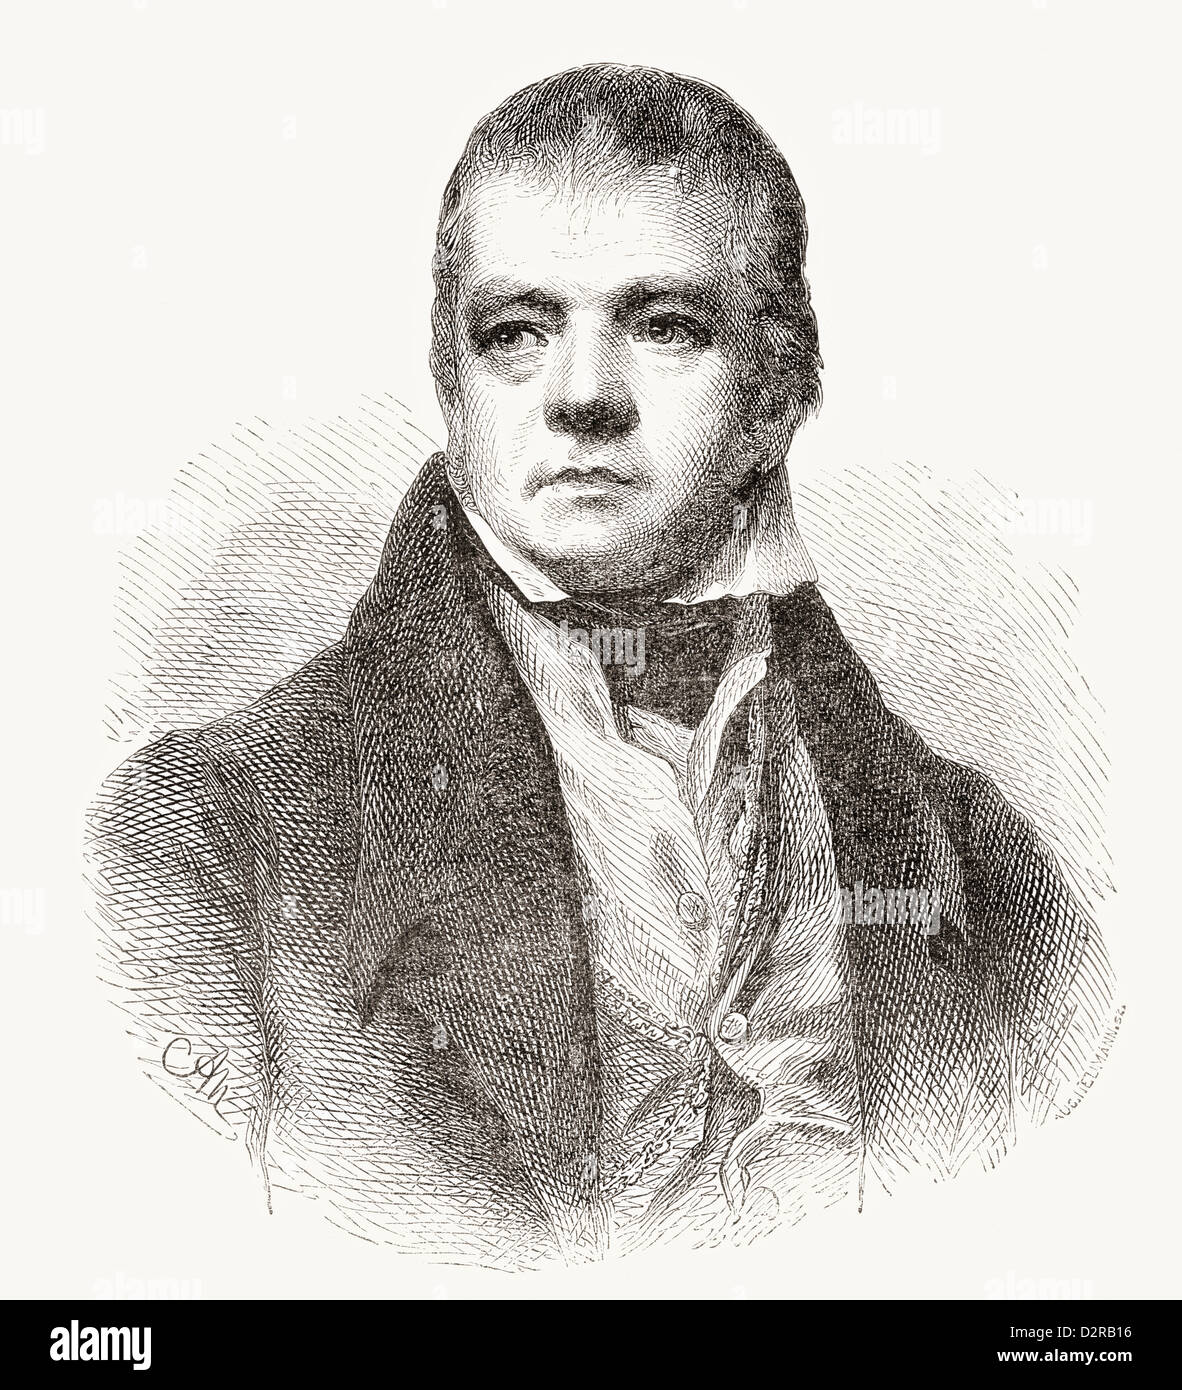 Sir Walter Scott, 1st Baronet, 1771 – 1832. Scottish historical novelist, playwright and poet. - Stock Image